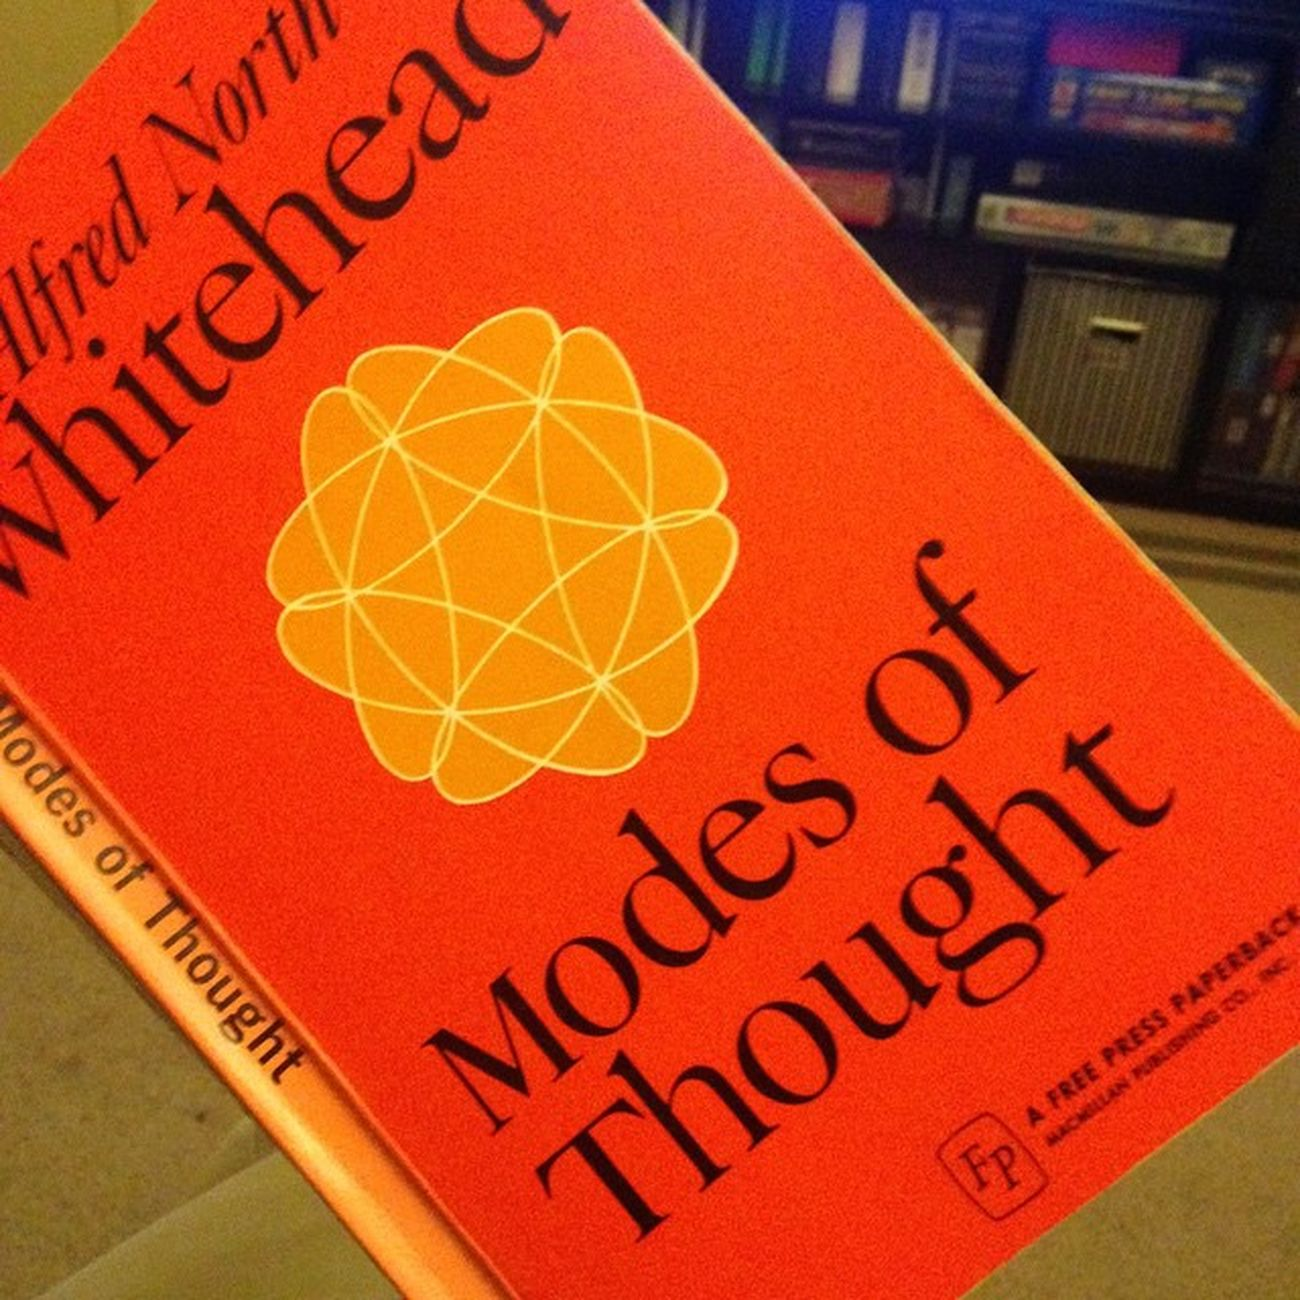 I learn something new every time. Alfrednorthwhitehead Modesofthought Process